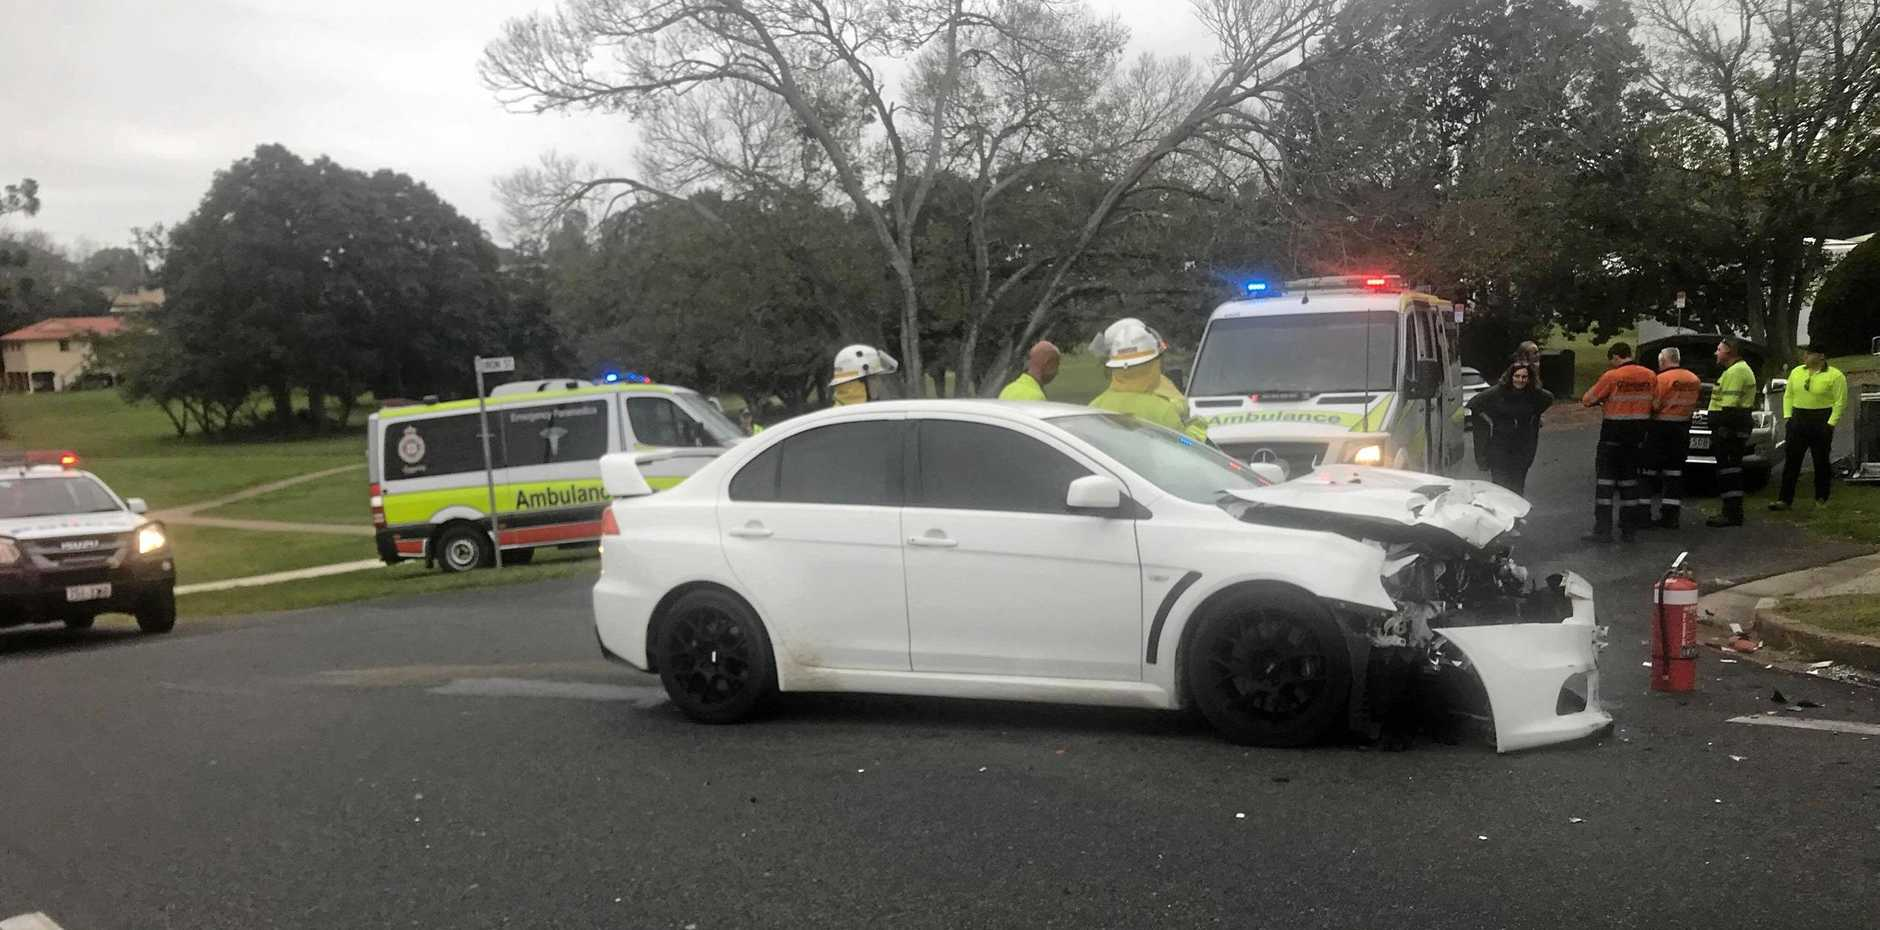 CRASH SCENE: A two-vehicle-crash occurred on Duke St earlier this morning, involving a Mitsubishi Lancer and Toyota Hilux just after 10am.